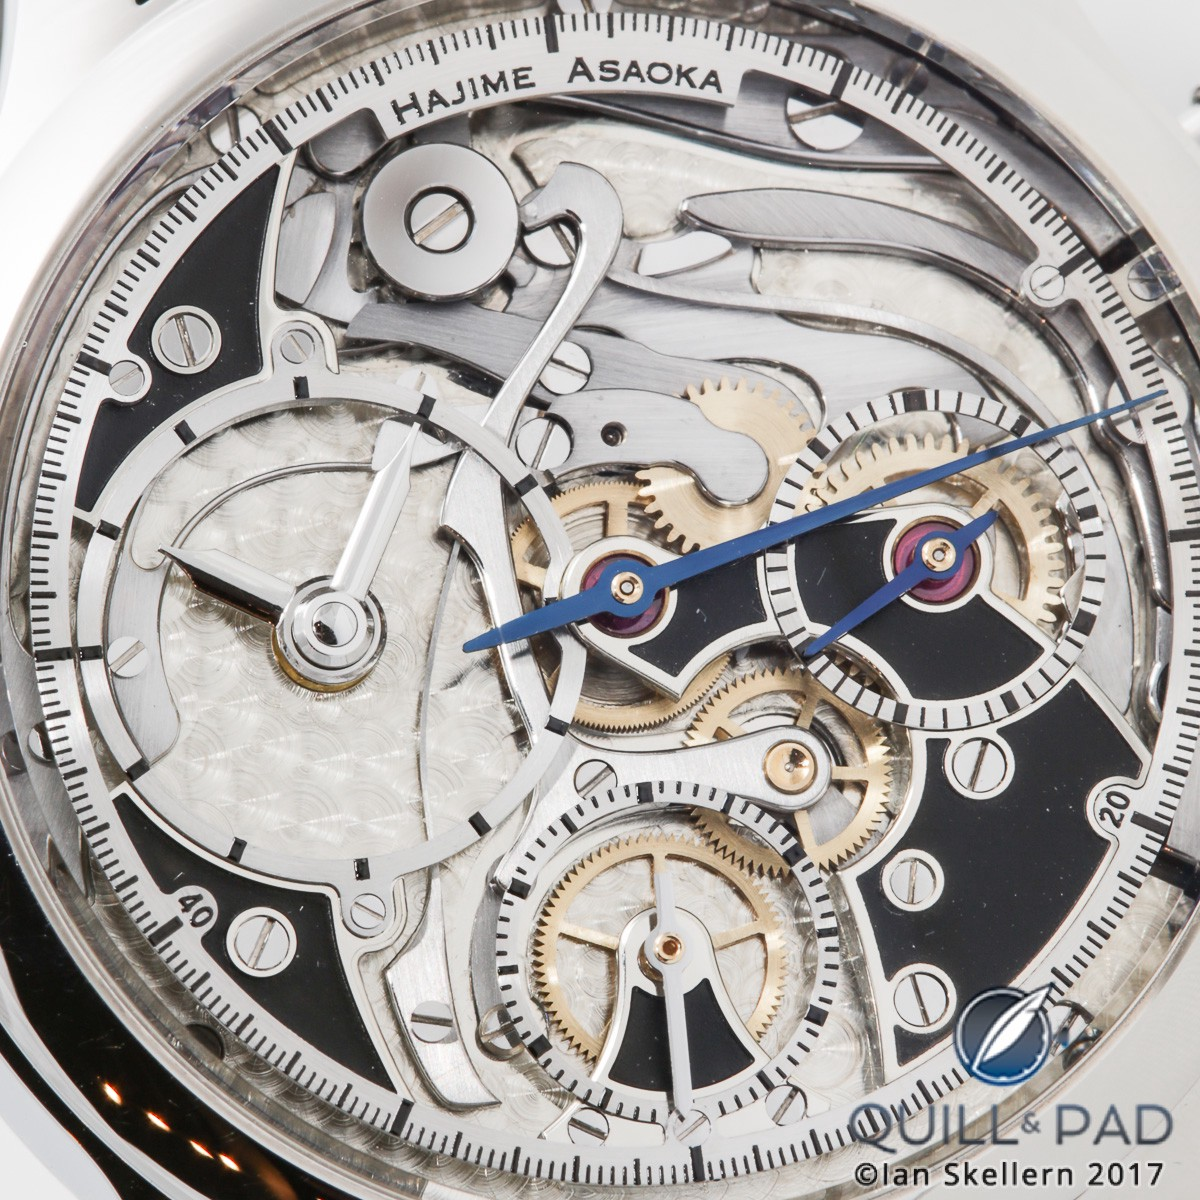 Close up look dial side of the Hajime Asaoka Chronograph